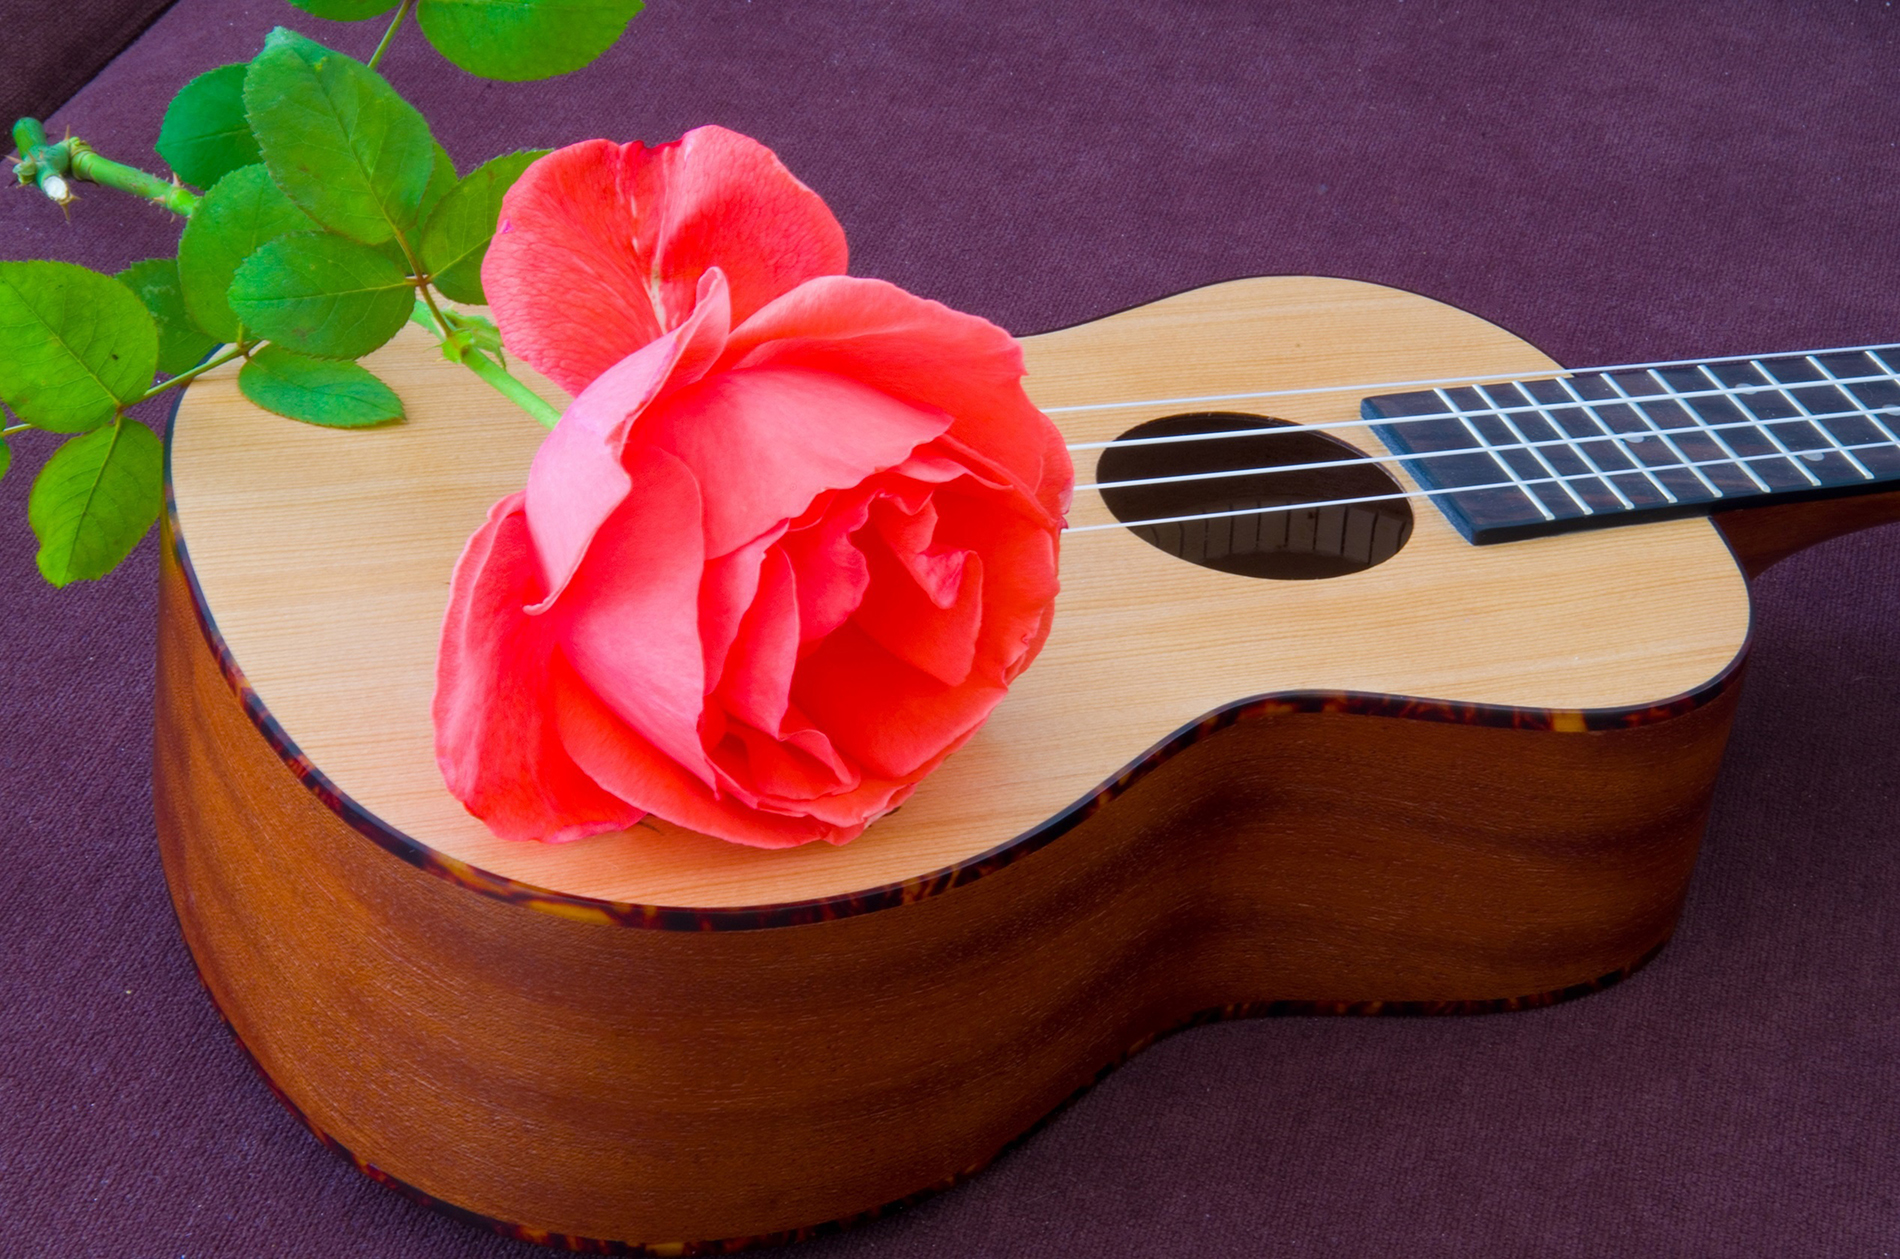 On the violin, red rose flower 52862